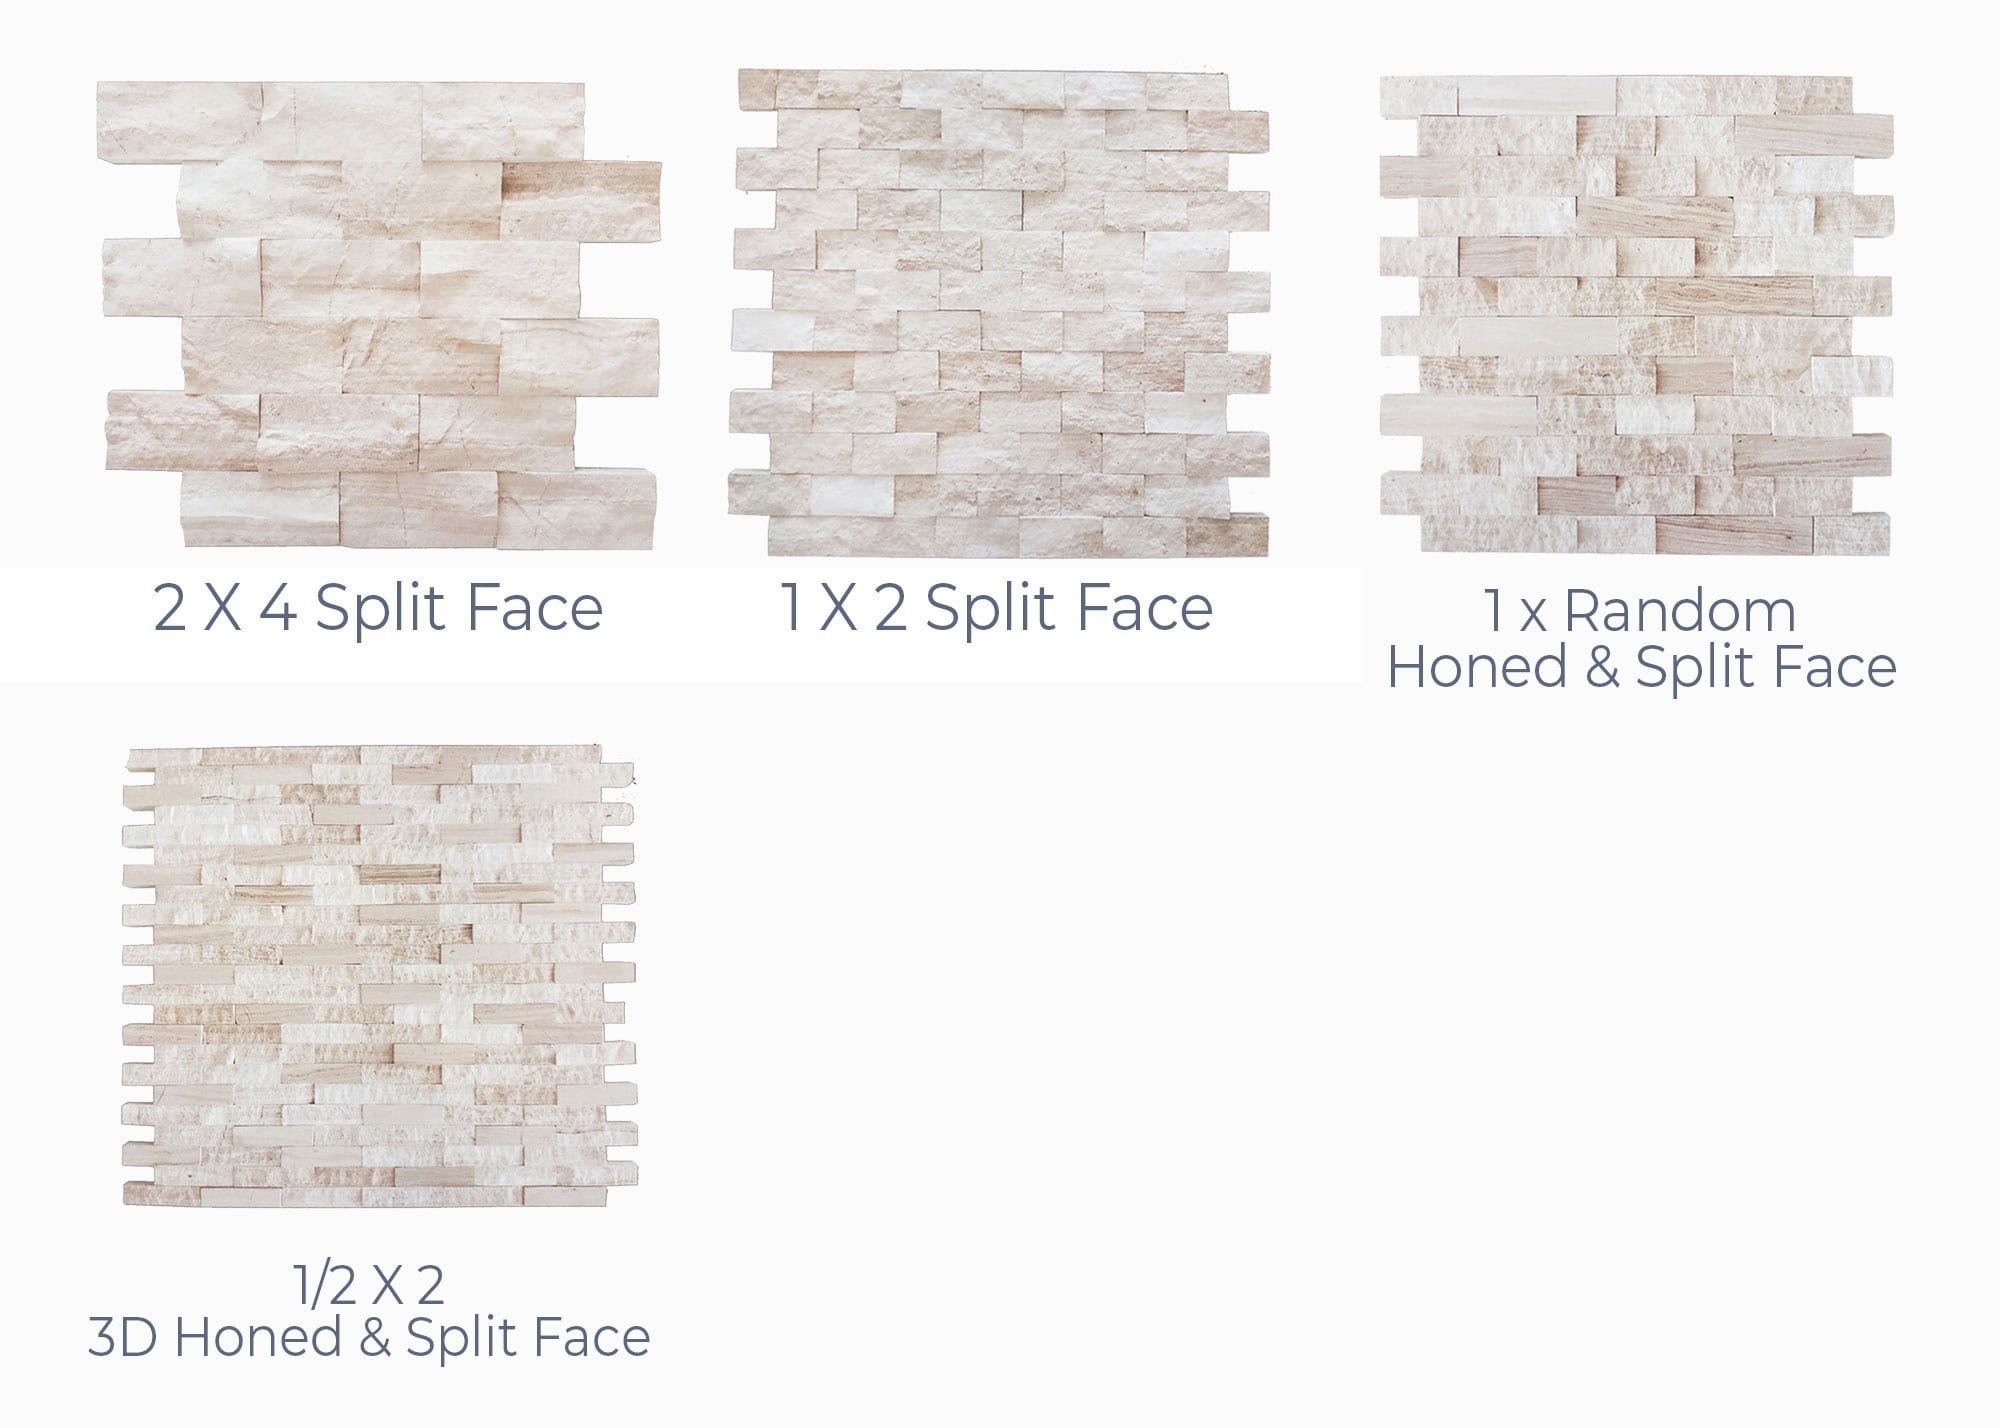 Stoneline-Group-White-Wood-Travertine-Marble-Collection-Marble-Veneer-3D-Honed-Split-Face-Random-Pictures